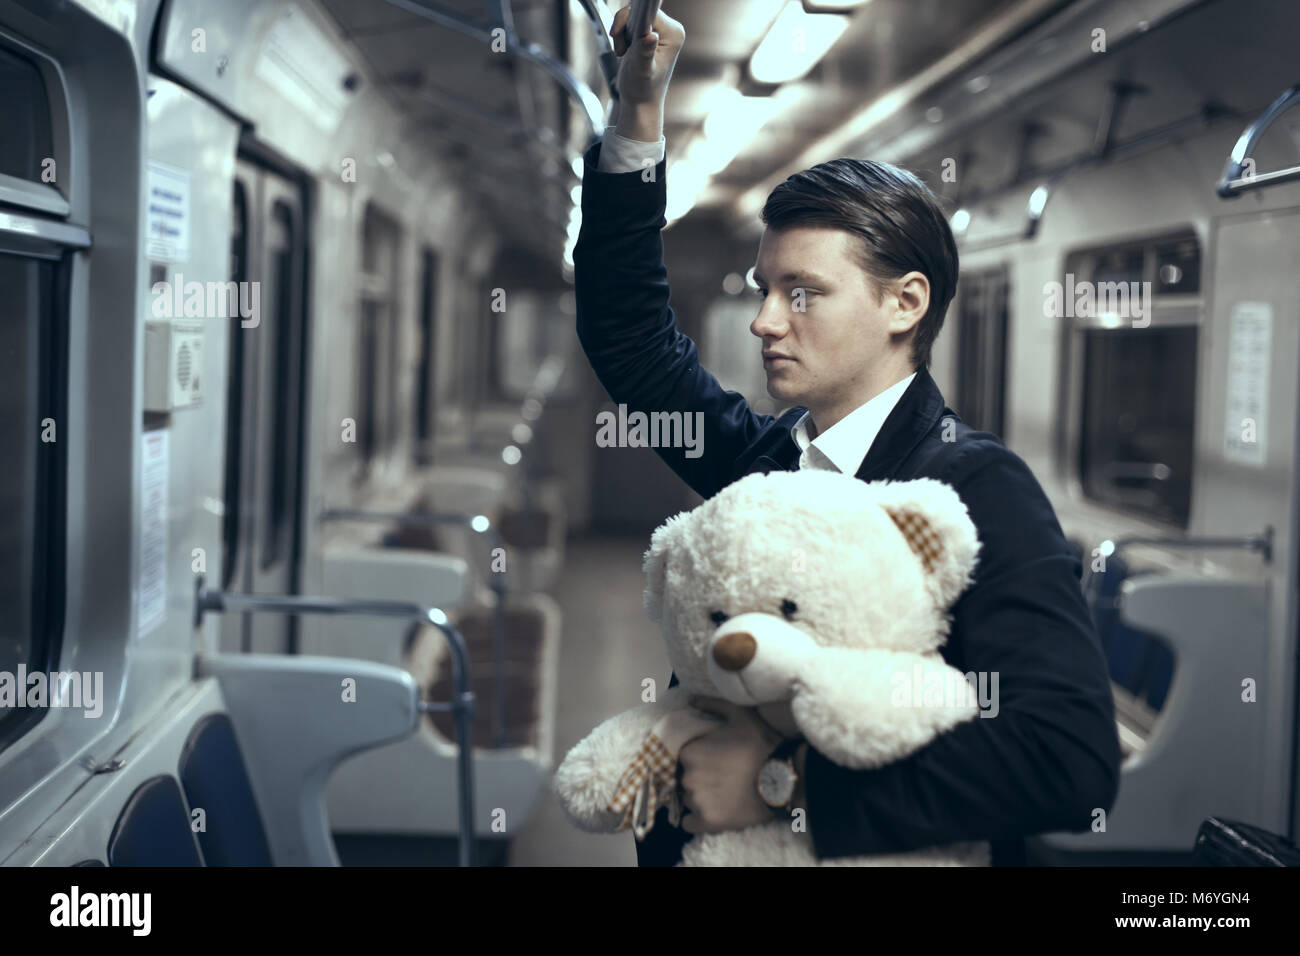 Young man is riding in an empty subway car. In his hands is a teddy bear - Stock Image